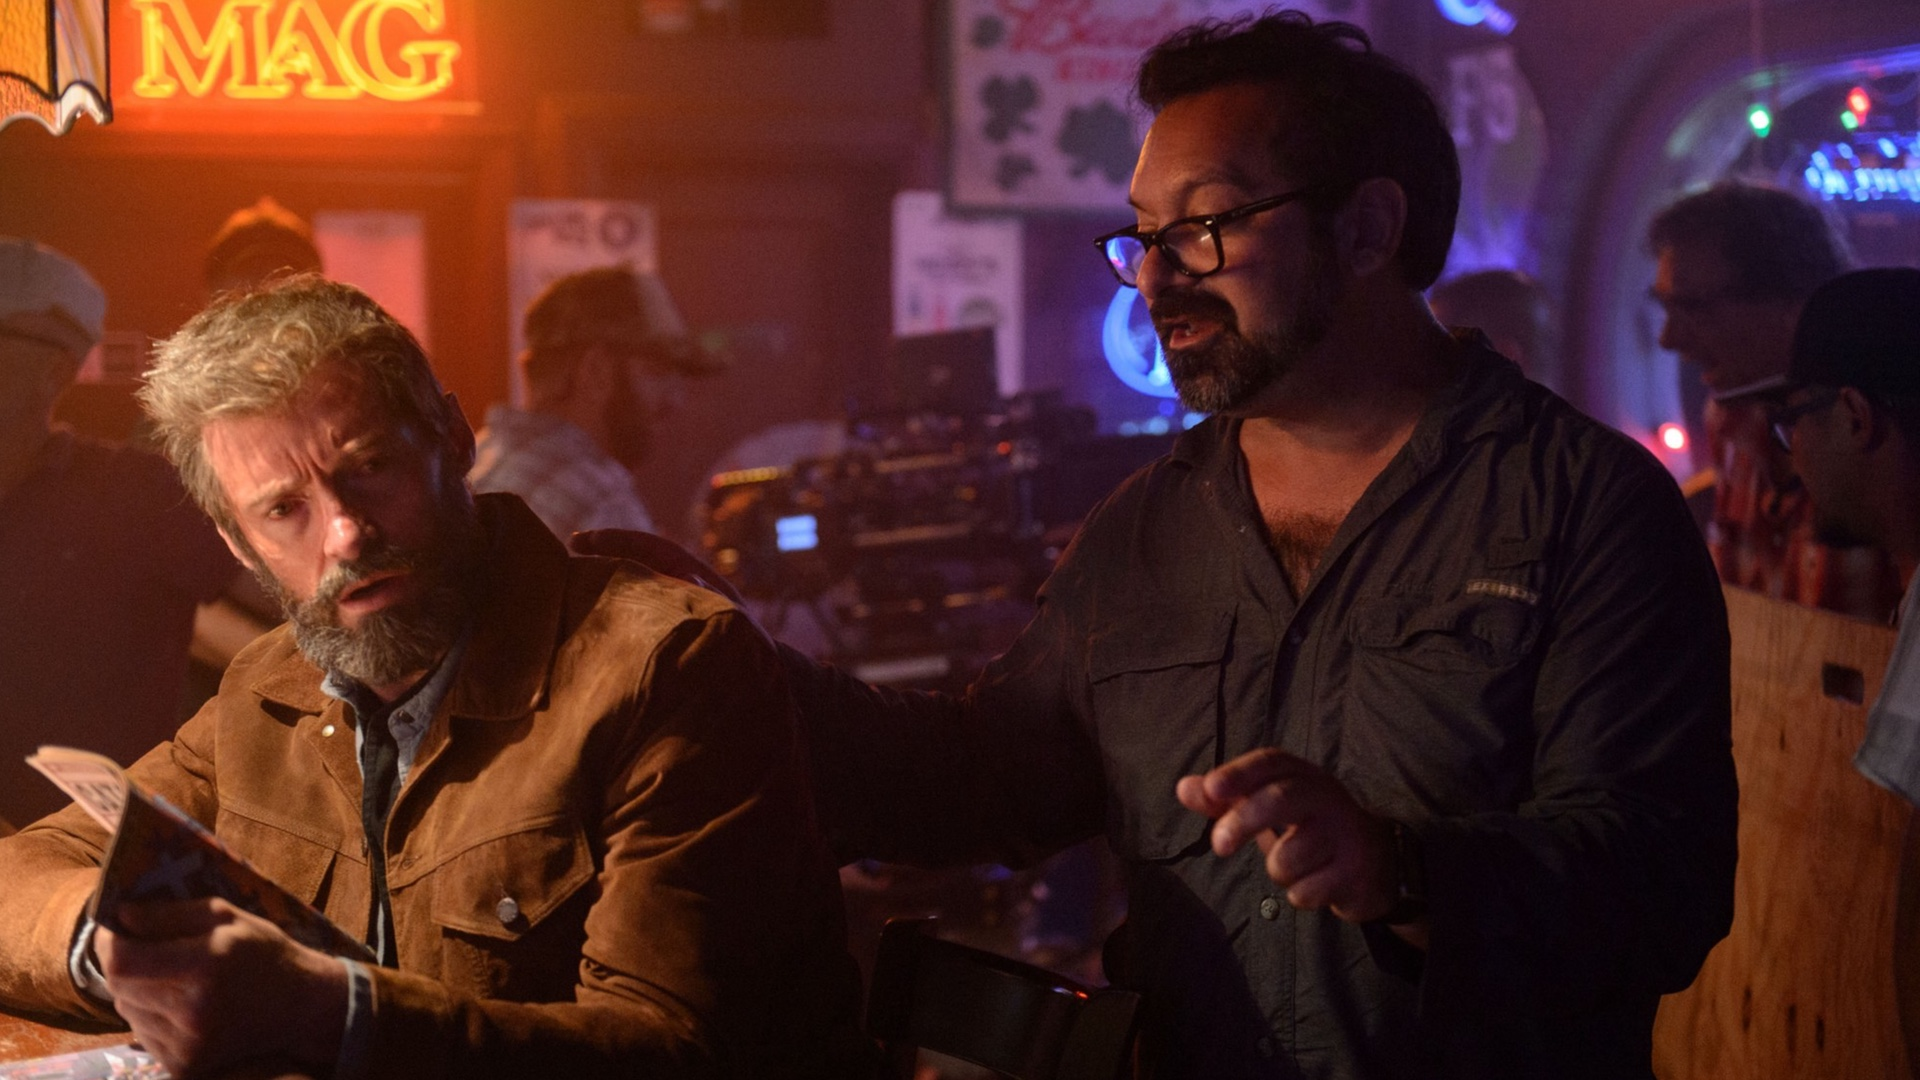 Image result for logan james mangold